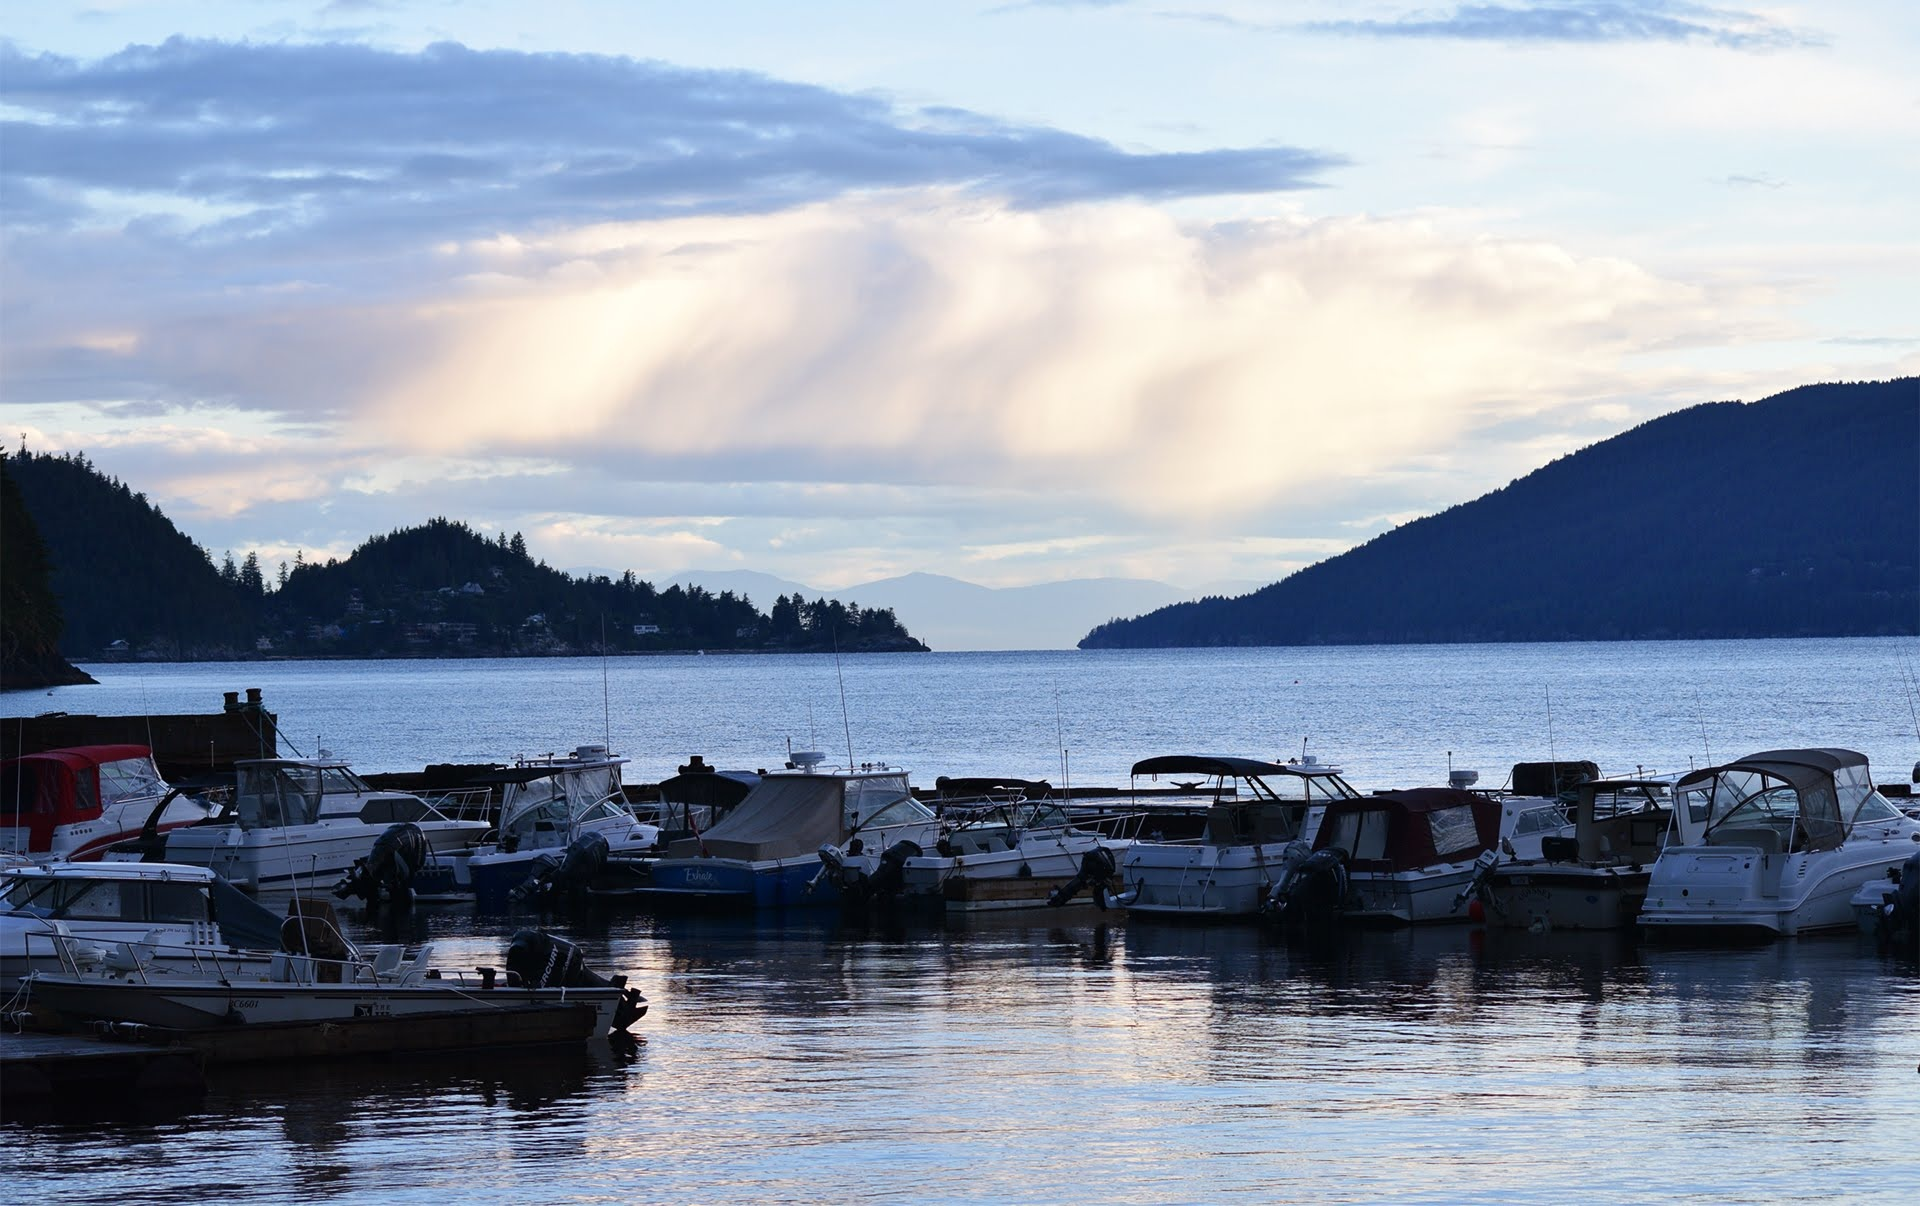 Sunset Marina, BC Canada  by #gregozphotos